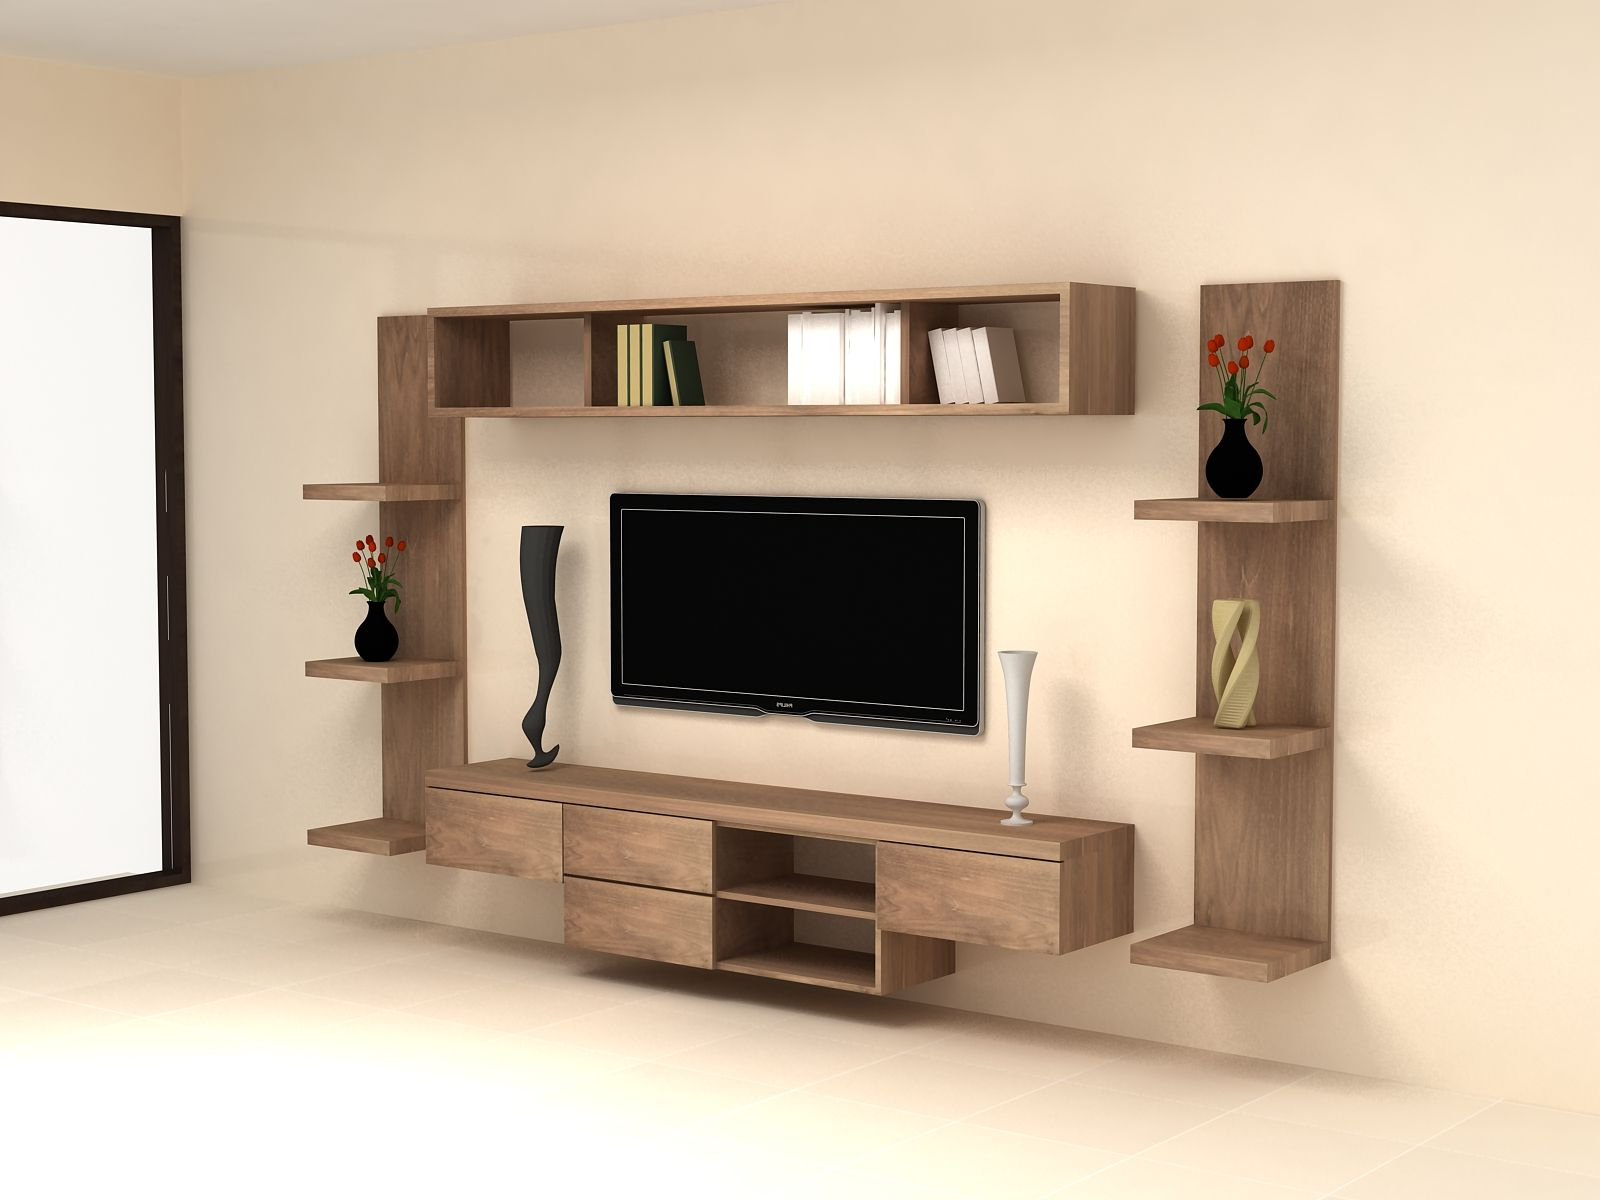 Modern Tv Cabinets Designs Intended For 2017 Wall Hung Tv Cabinet  (View 8 of 20)